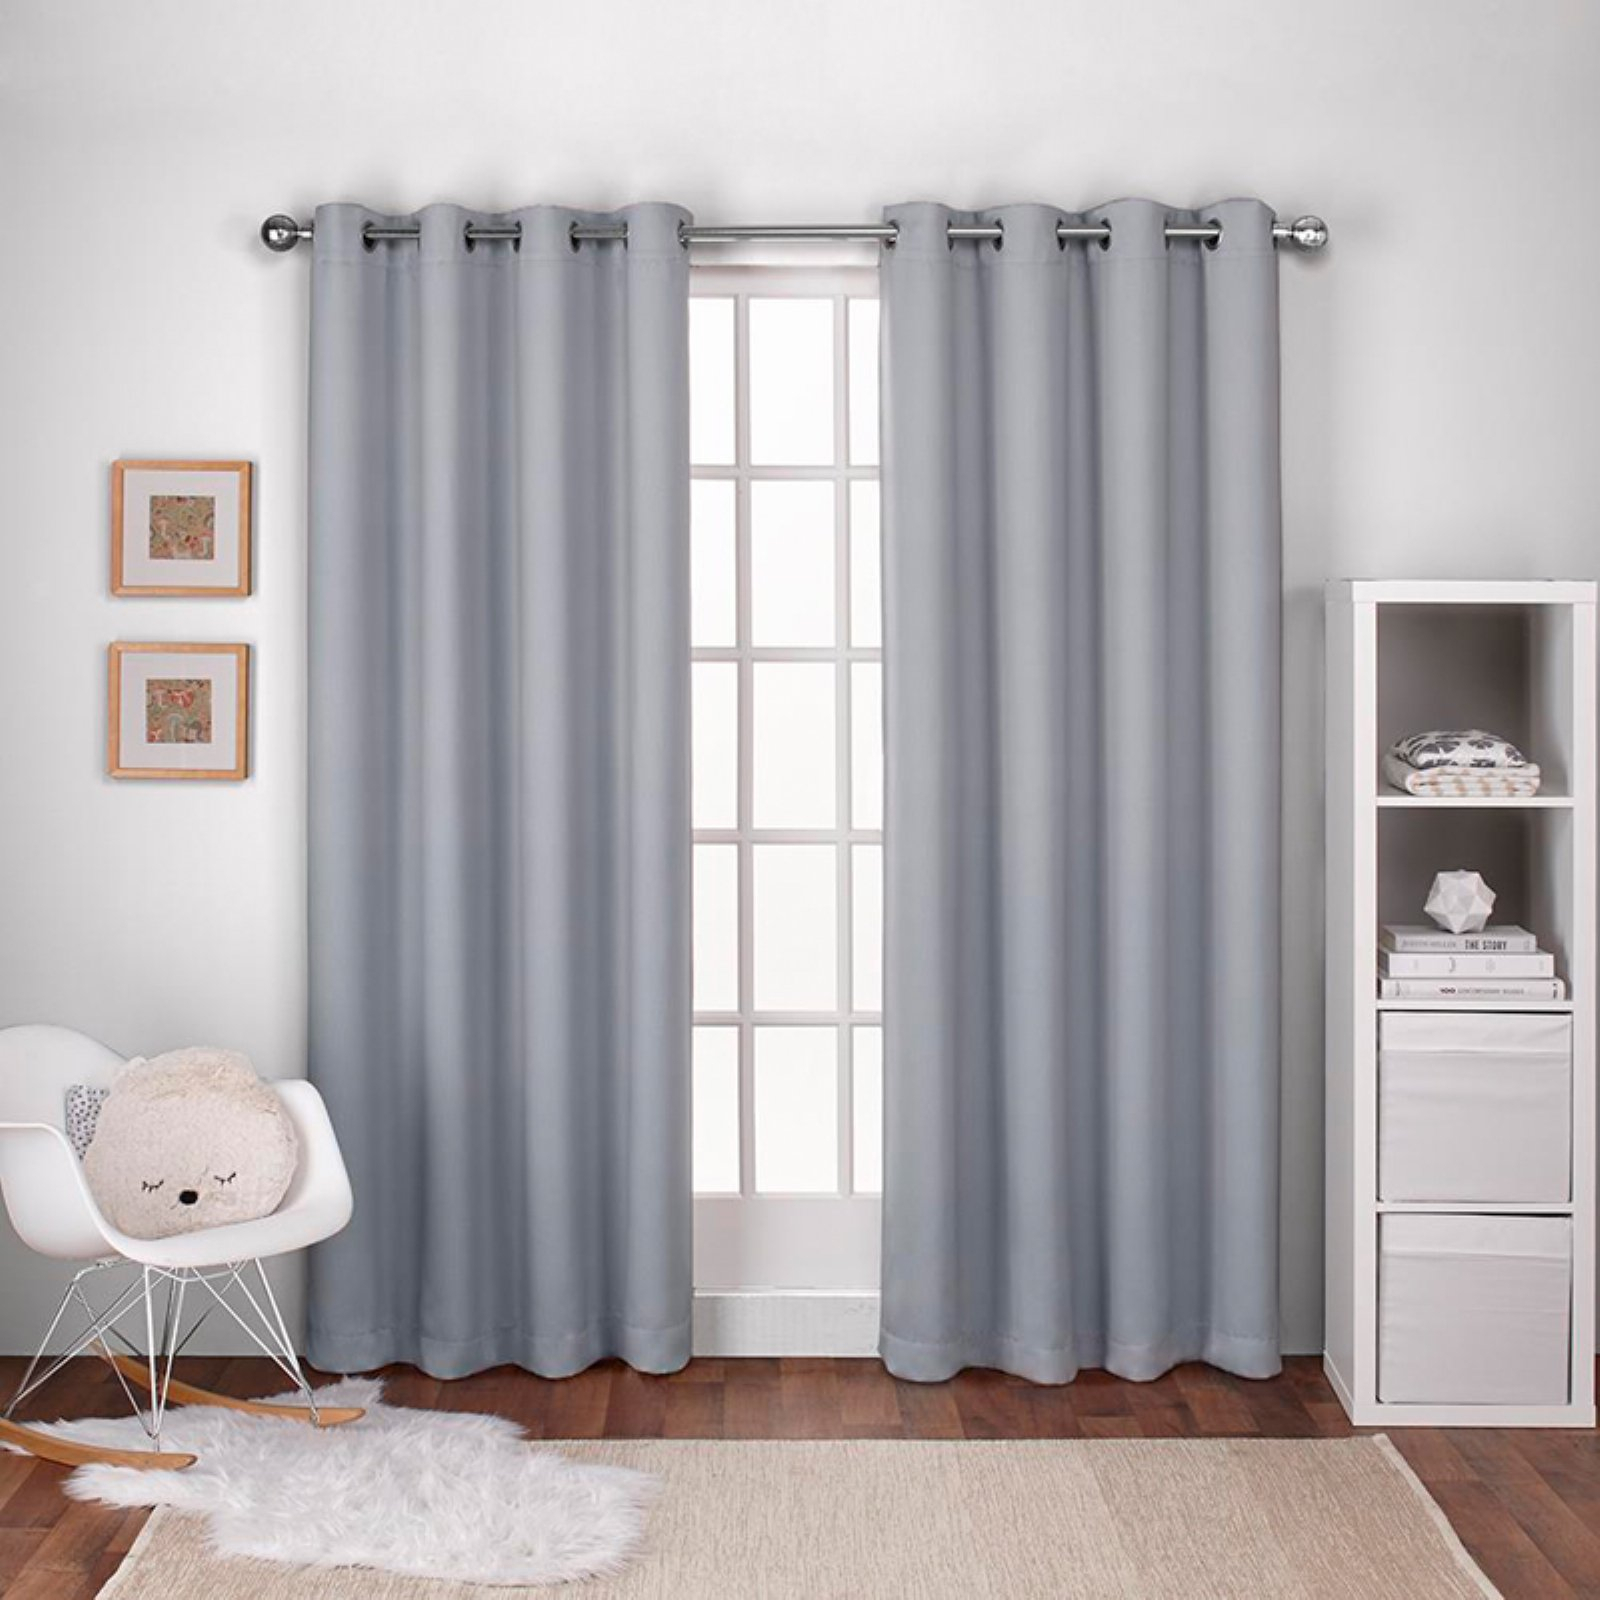 Exclusive Home Textured Woven Blackout Window Curtain Panel Pair With Grommet Top Intended For Woven Blackout Grommet Top Curtain Panel Pairs (View 7 of 30)